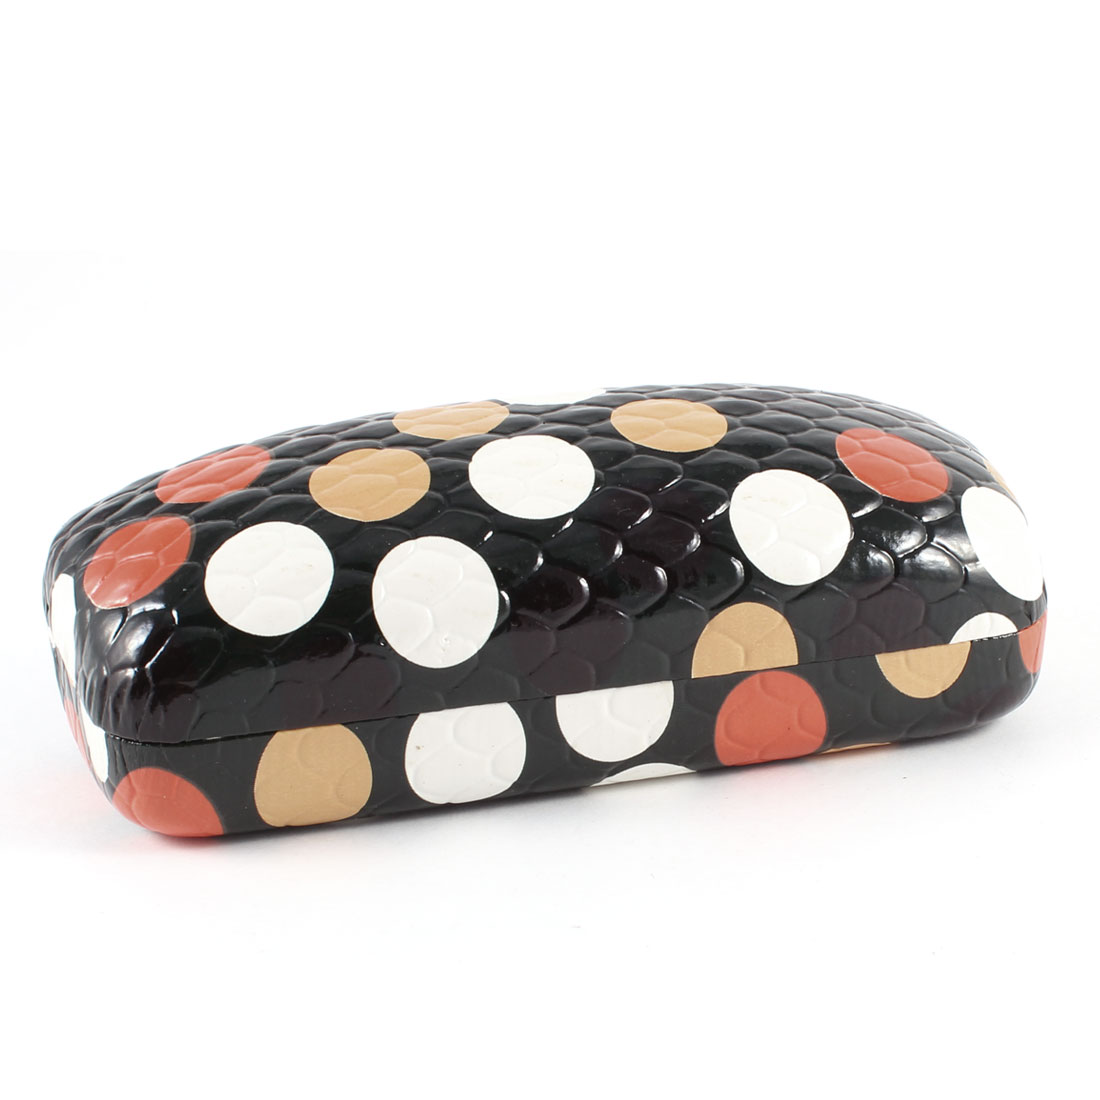 Spring Hinge Closure MultiColor Dot Print Flannel Lining Glasses Case Black